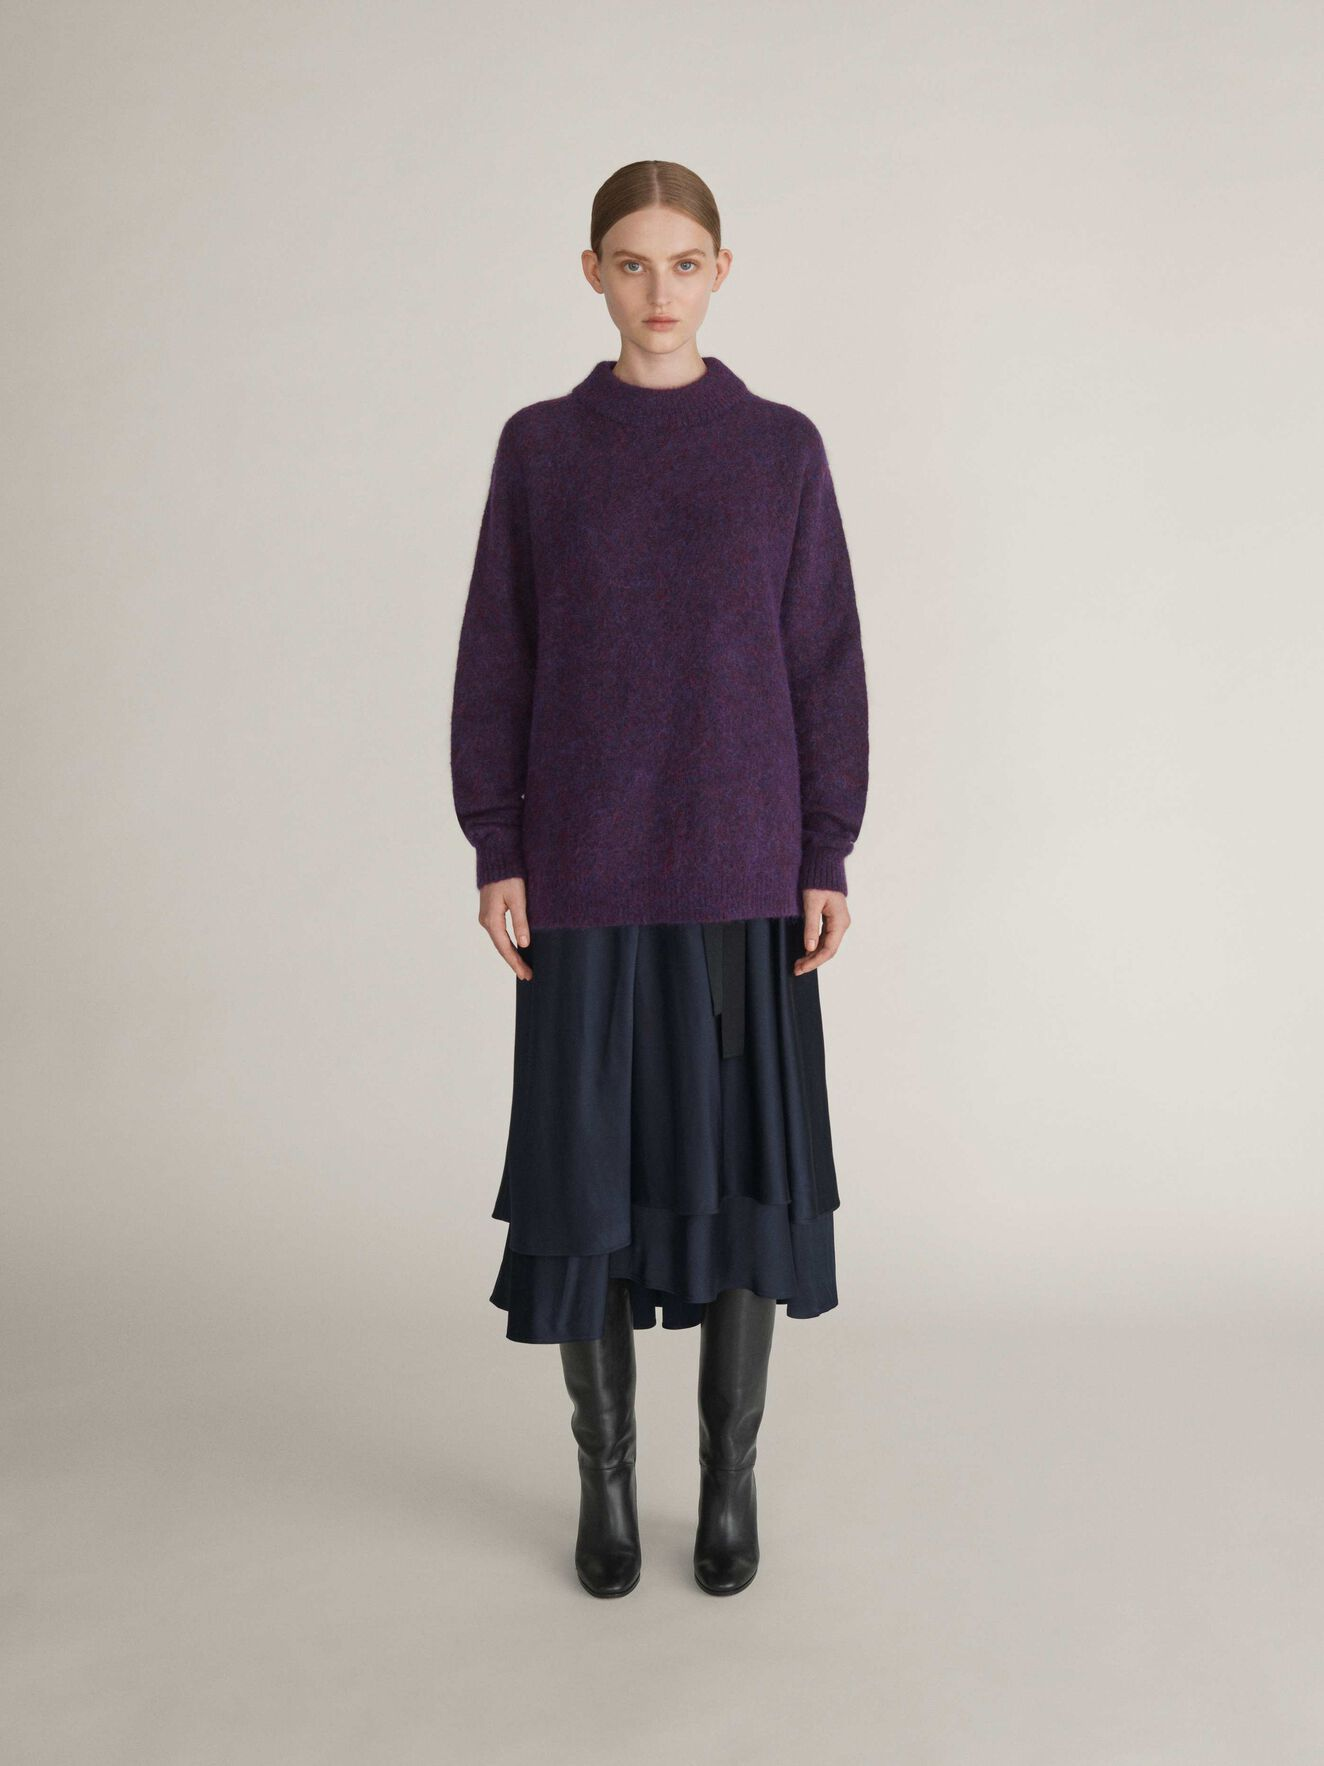 Gwyllen Pullover in Juicy Plum from Tiger of Sweden